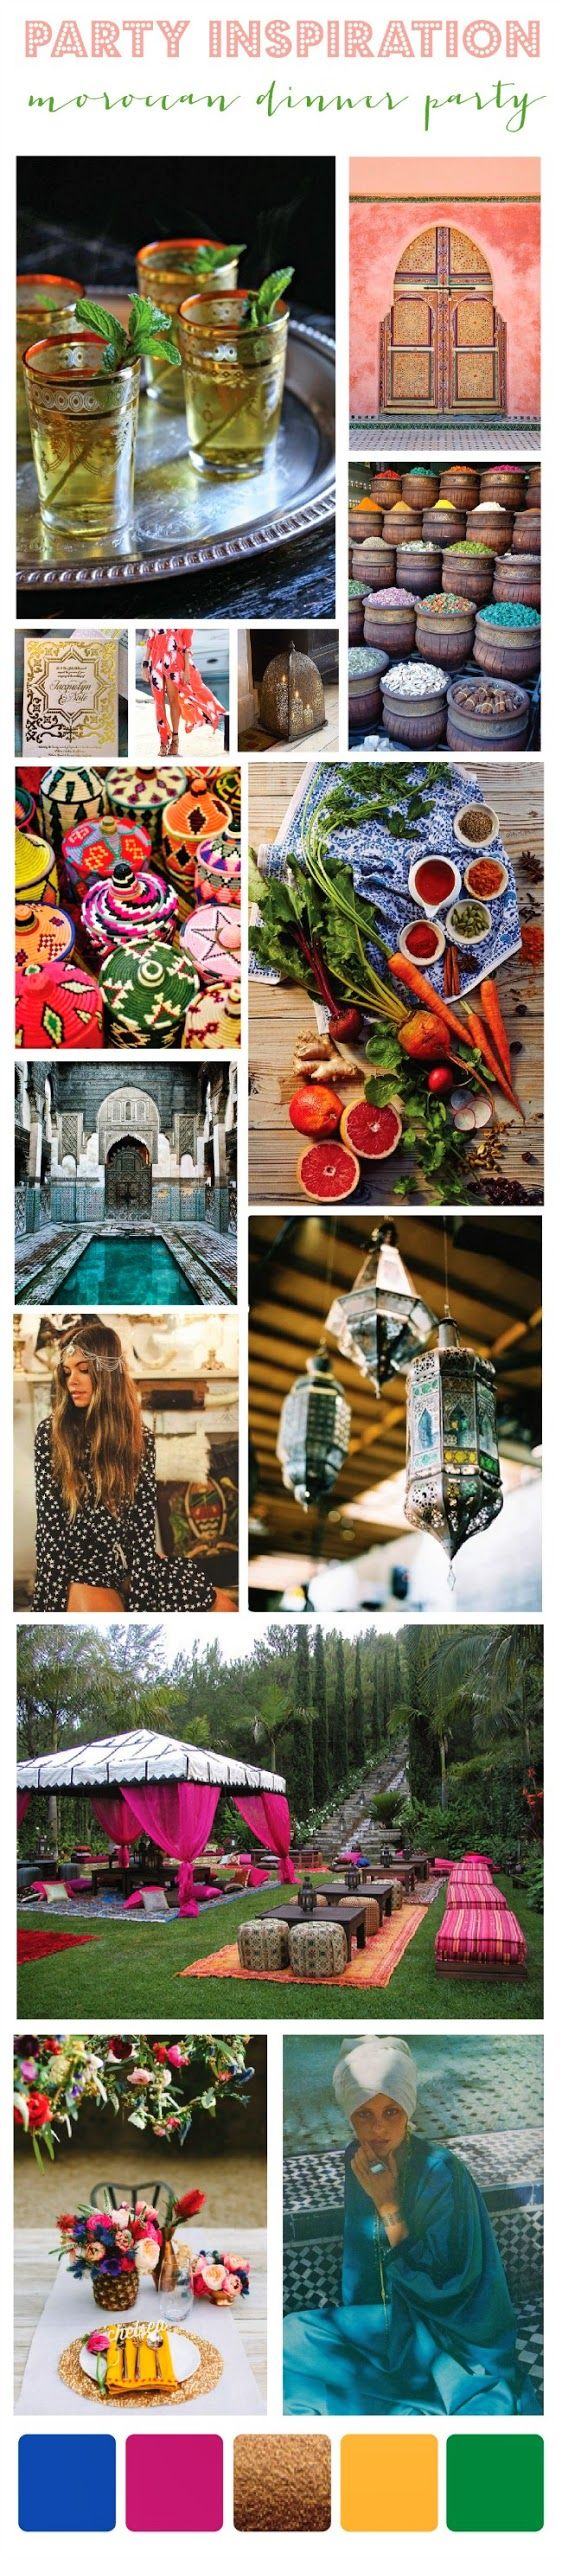 {moroccan dinner party inspiration}